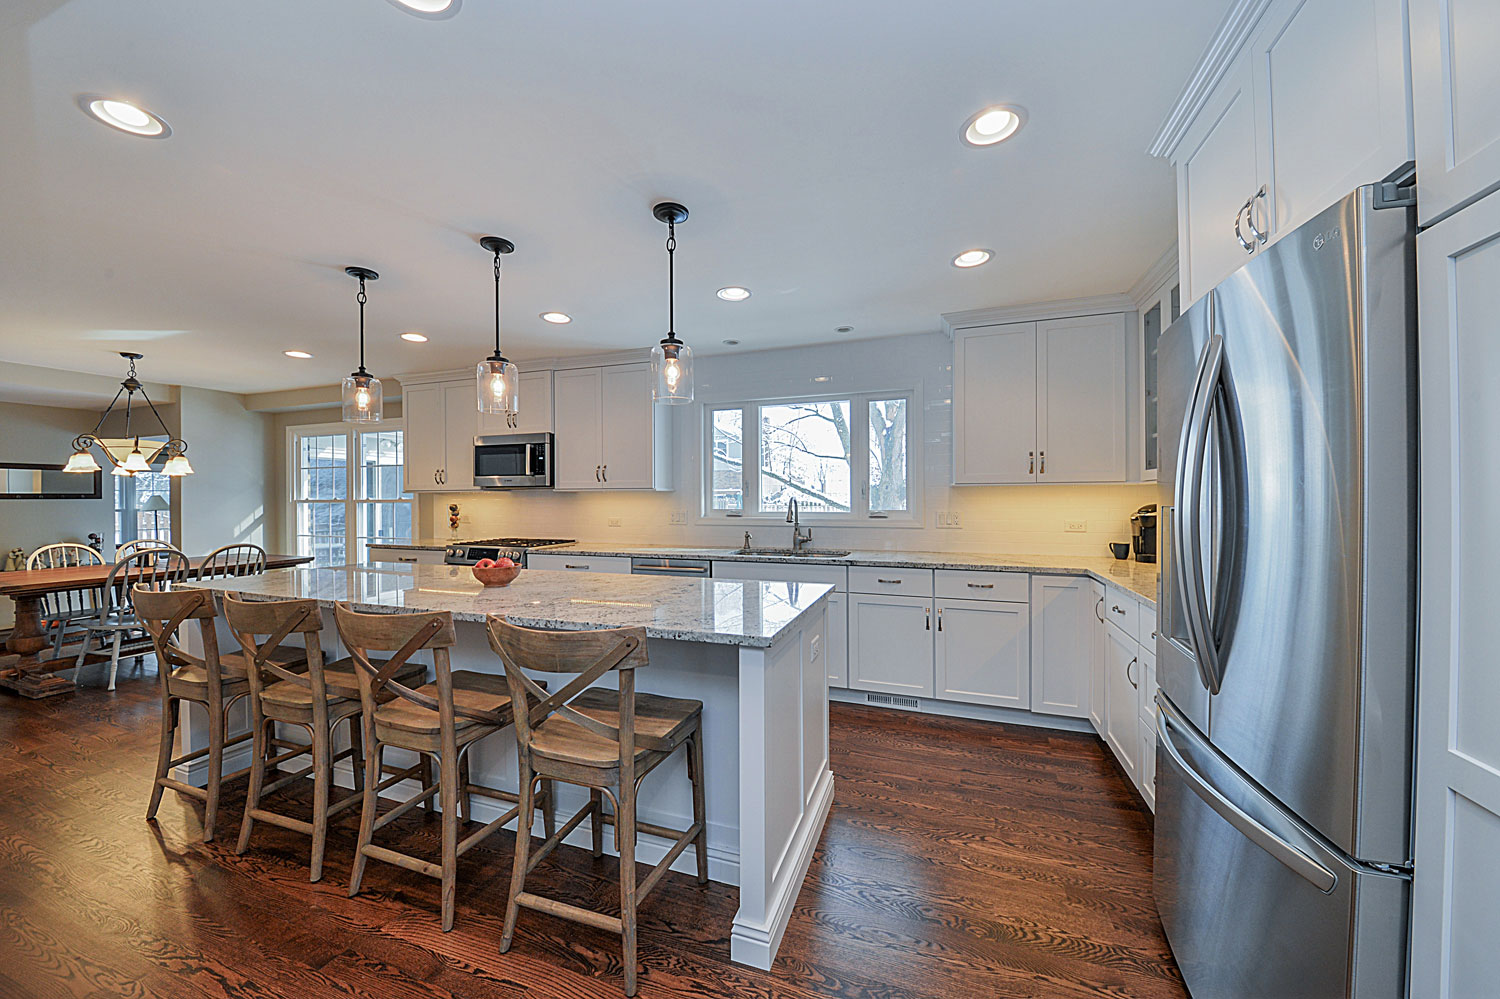 Kitchen Remodeling Ideas White Cabinetry White Quartz Aurora Naperville IL Illinois Sebring Services